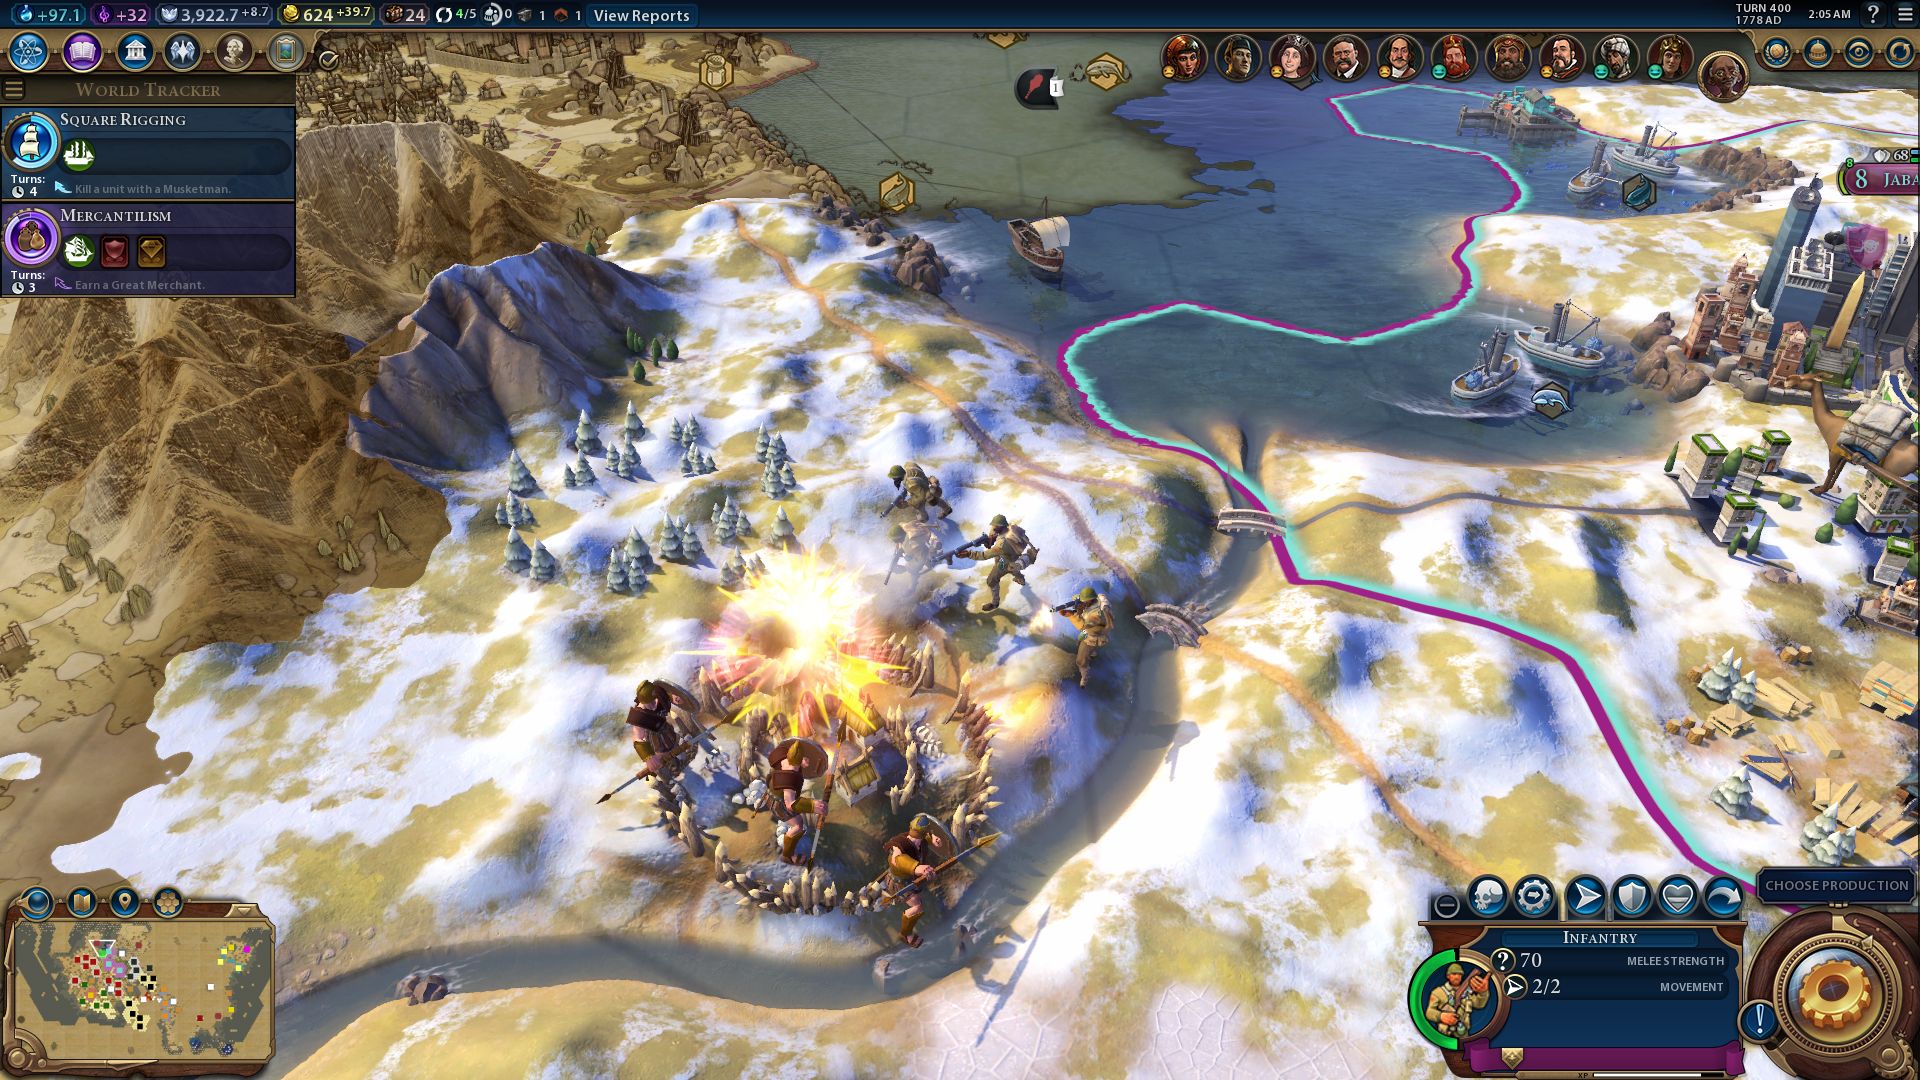 Civilization 6 team multiplayer can be enabled by editing a single